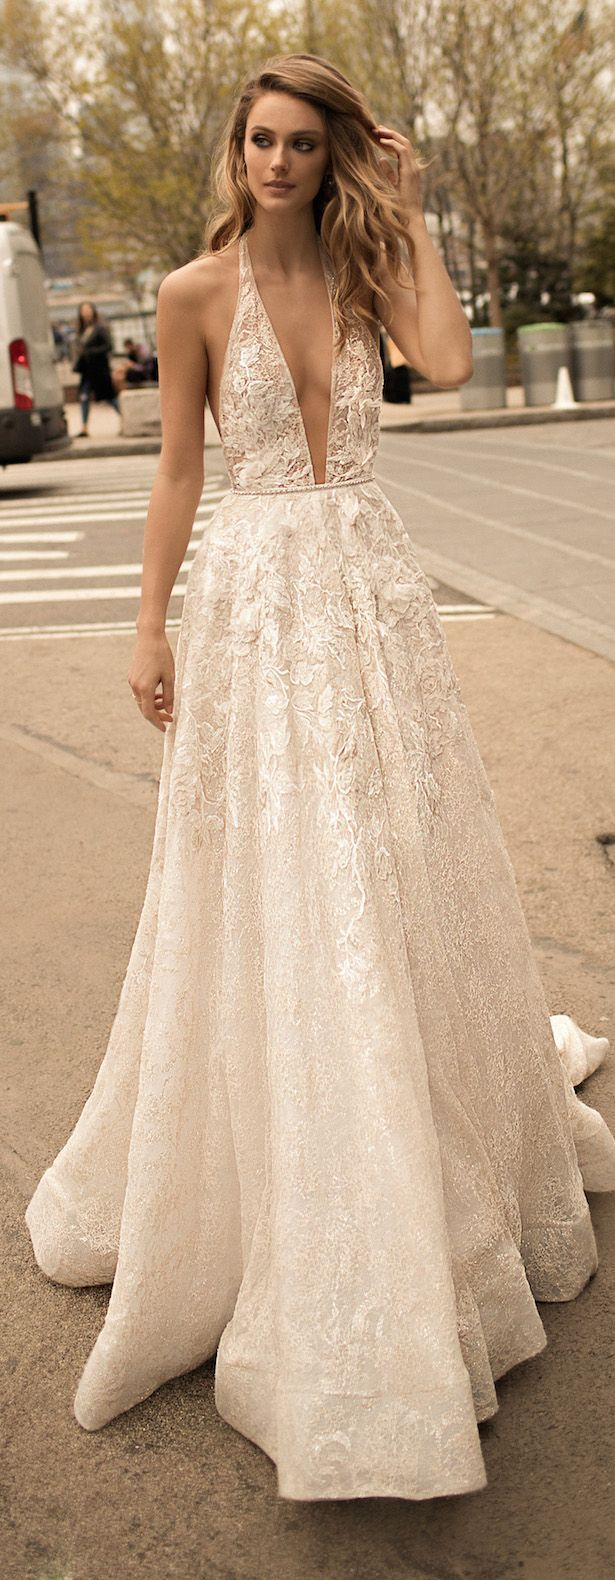 Berta wedding dress collection spring scroll pinterest